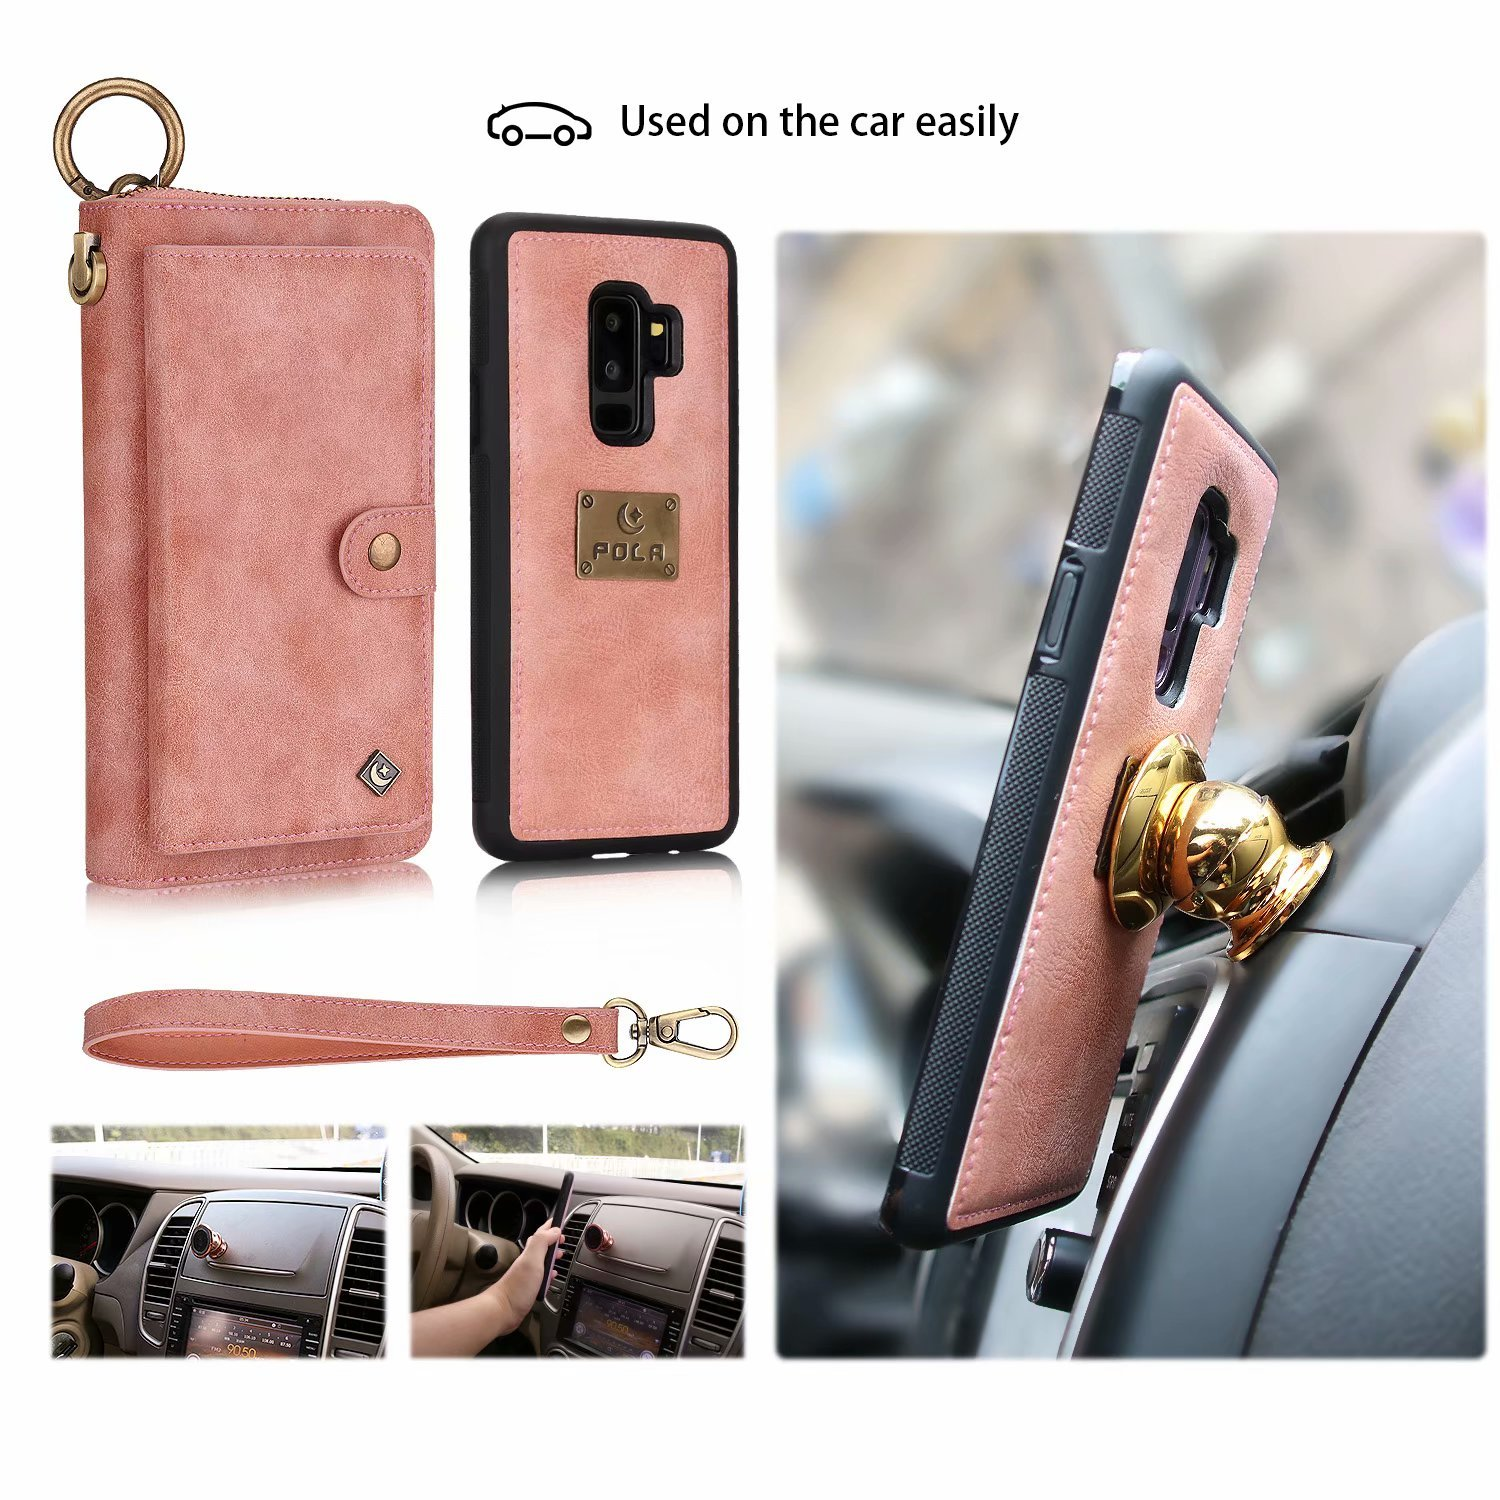 Galaxy S9 Plus Wallet Phone Case,GX-LV Samsung Galaxy S9 Plus Wallet Case Leather Case Cover Zipper Pouch with 14 Card Holder,Magnetic Detachable Case For Samsung Galaxy S9 Plus (Pink) by GX-LV (Image #8)